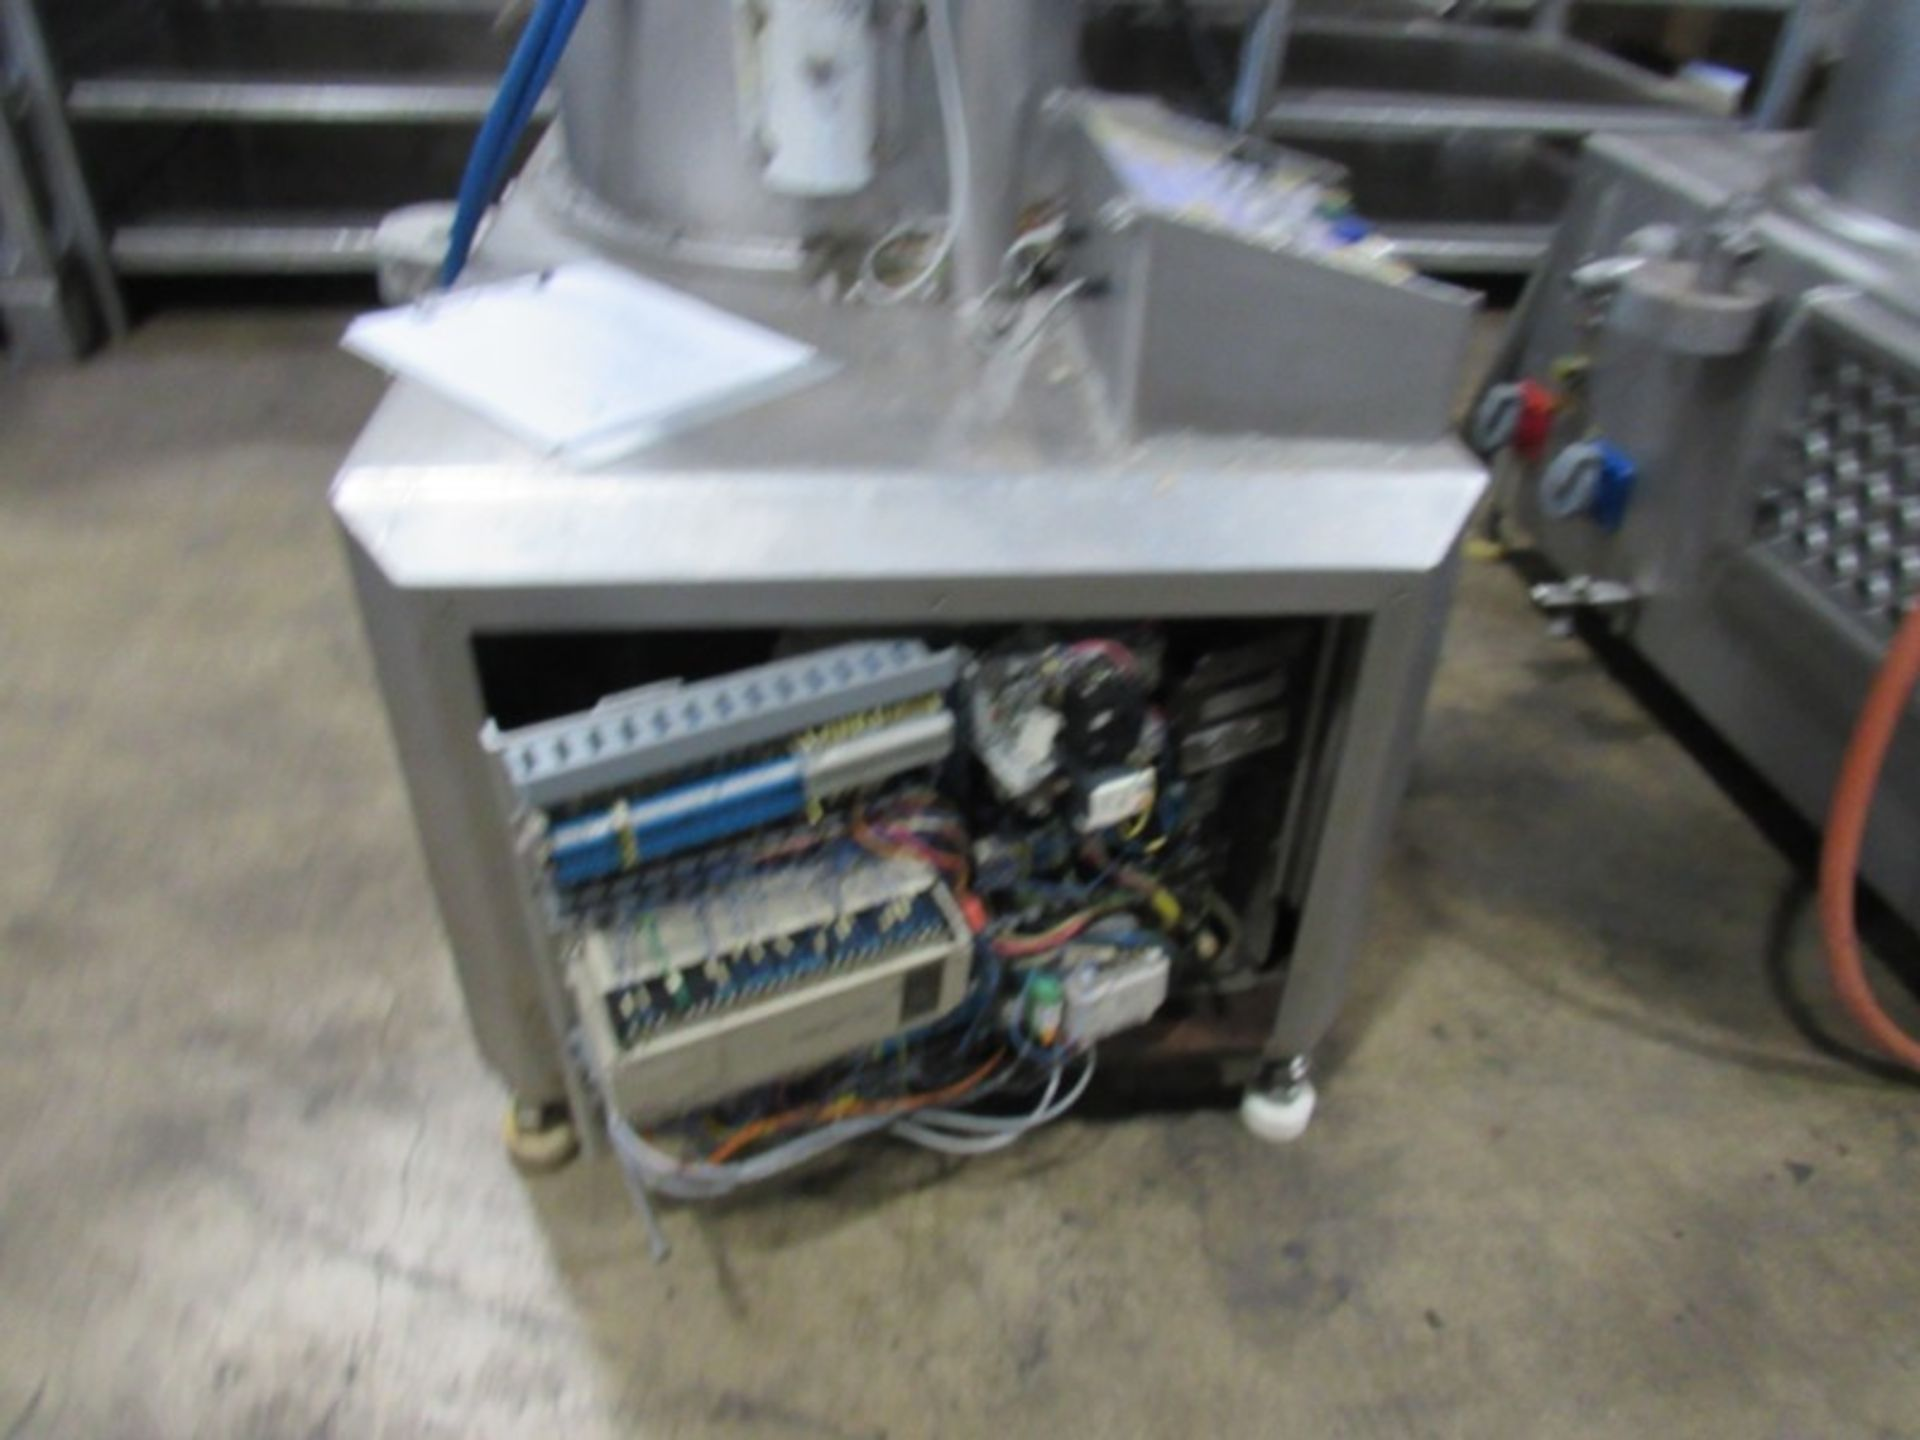 Handtmann Mdl. HVF-90 Vacuum Stuffer Pump, Located in Plano, Illinois Equipment must be removed by - Image 4 of 6